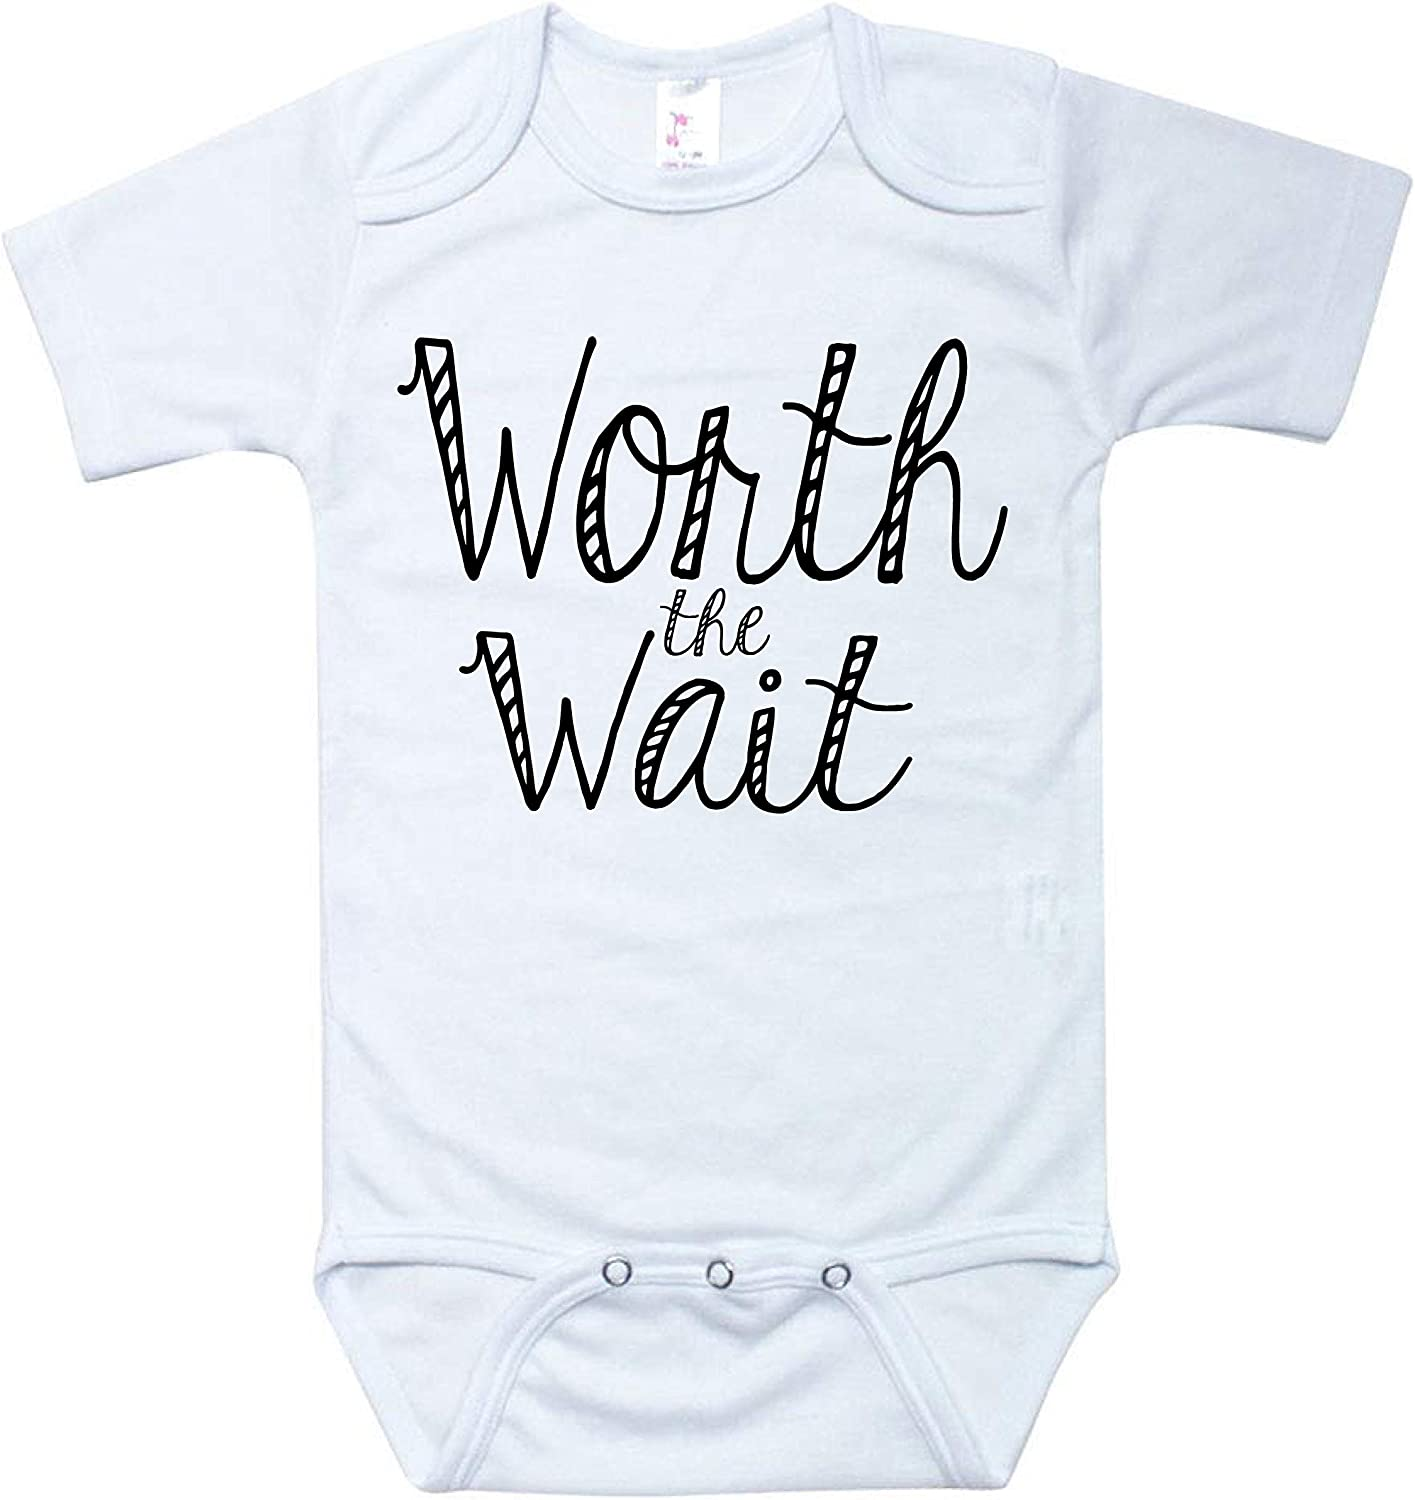 Little Adam & Eve Baby - Baby Boys Baby Girls Funny Baby Onesies 0-3 Months